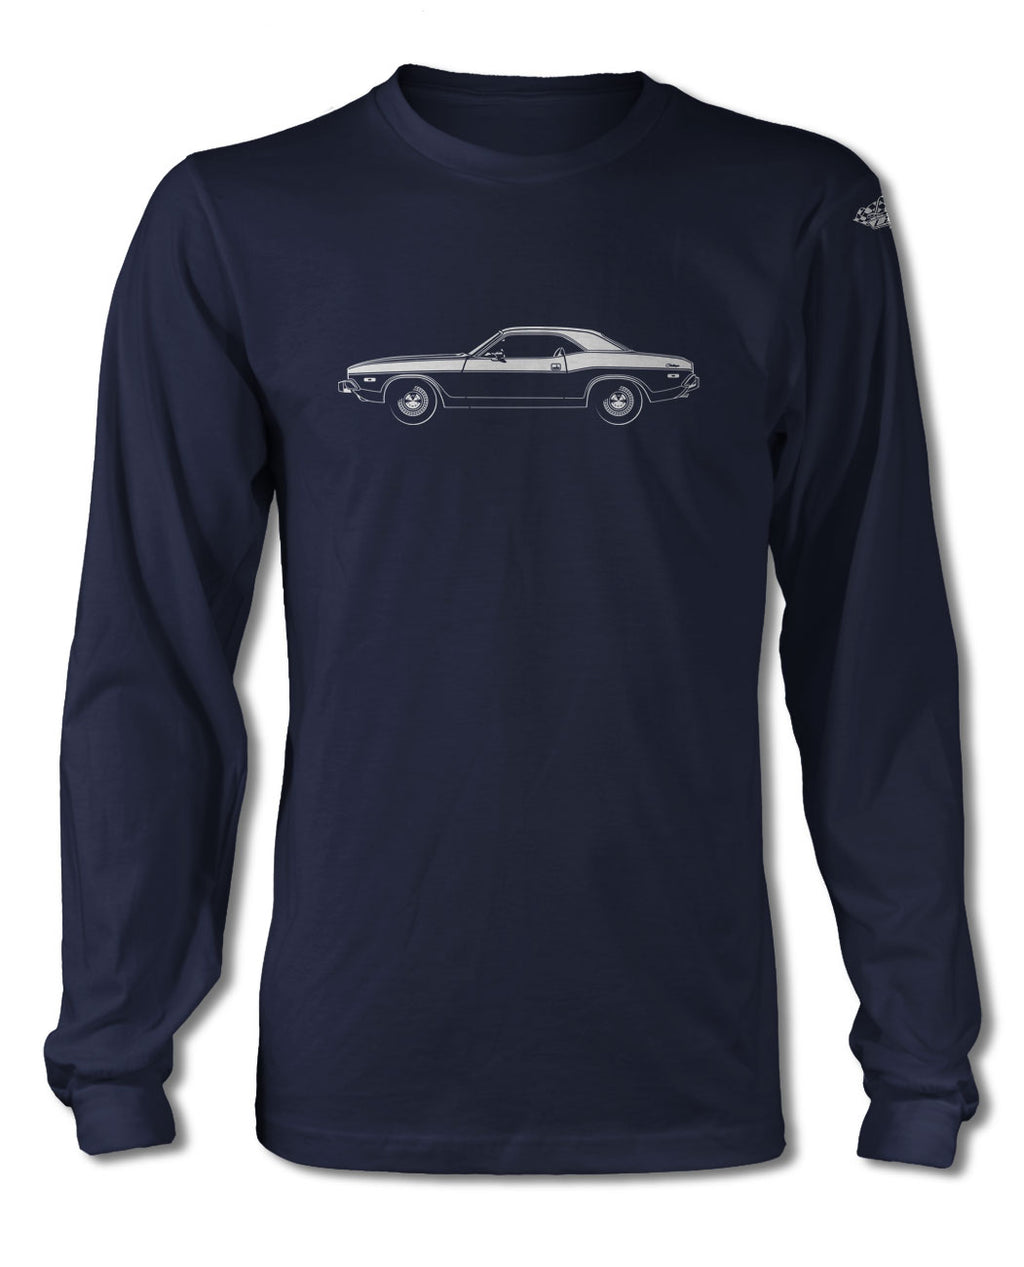 1974 Dodge Challenger Base Hardtop T-Shirt - Long Sleeves - Side View